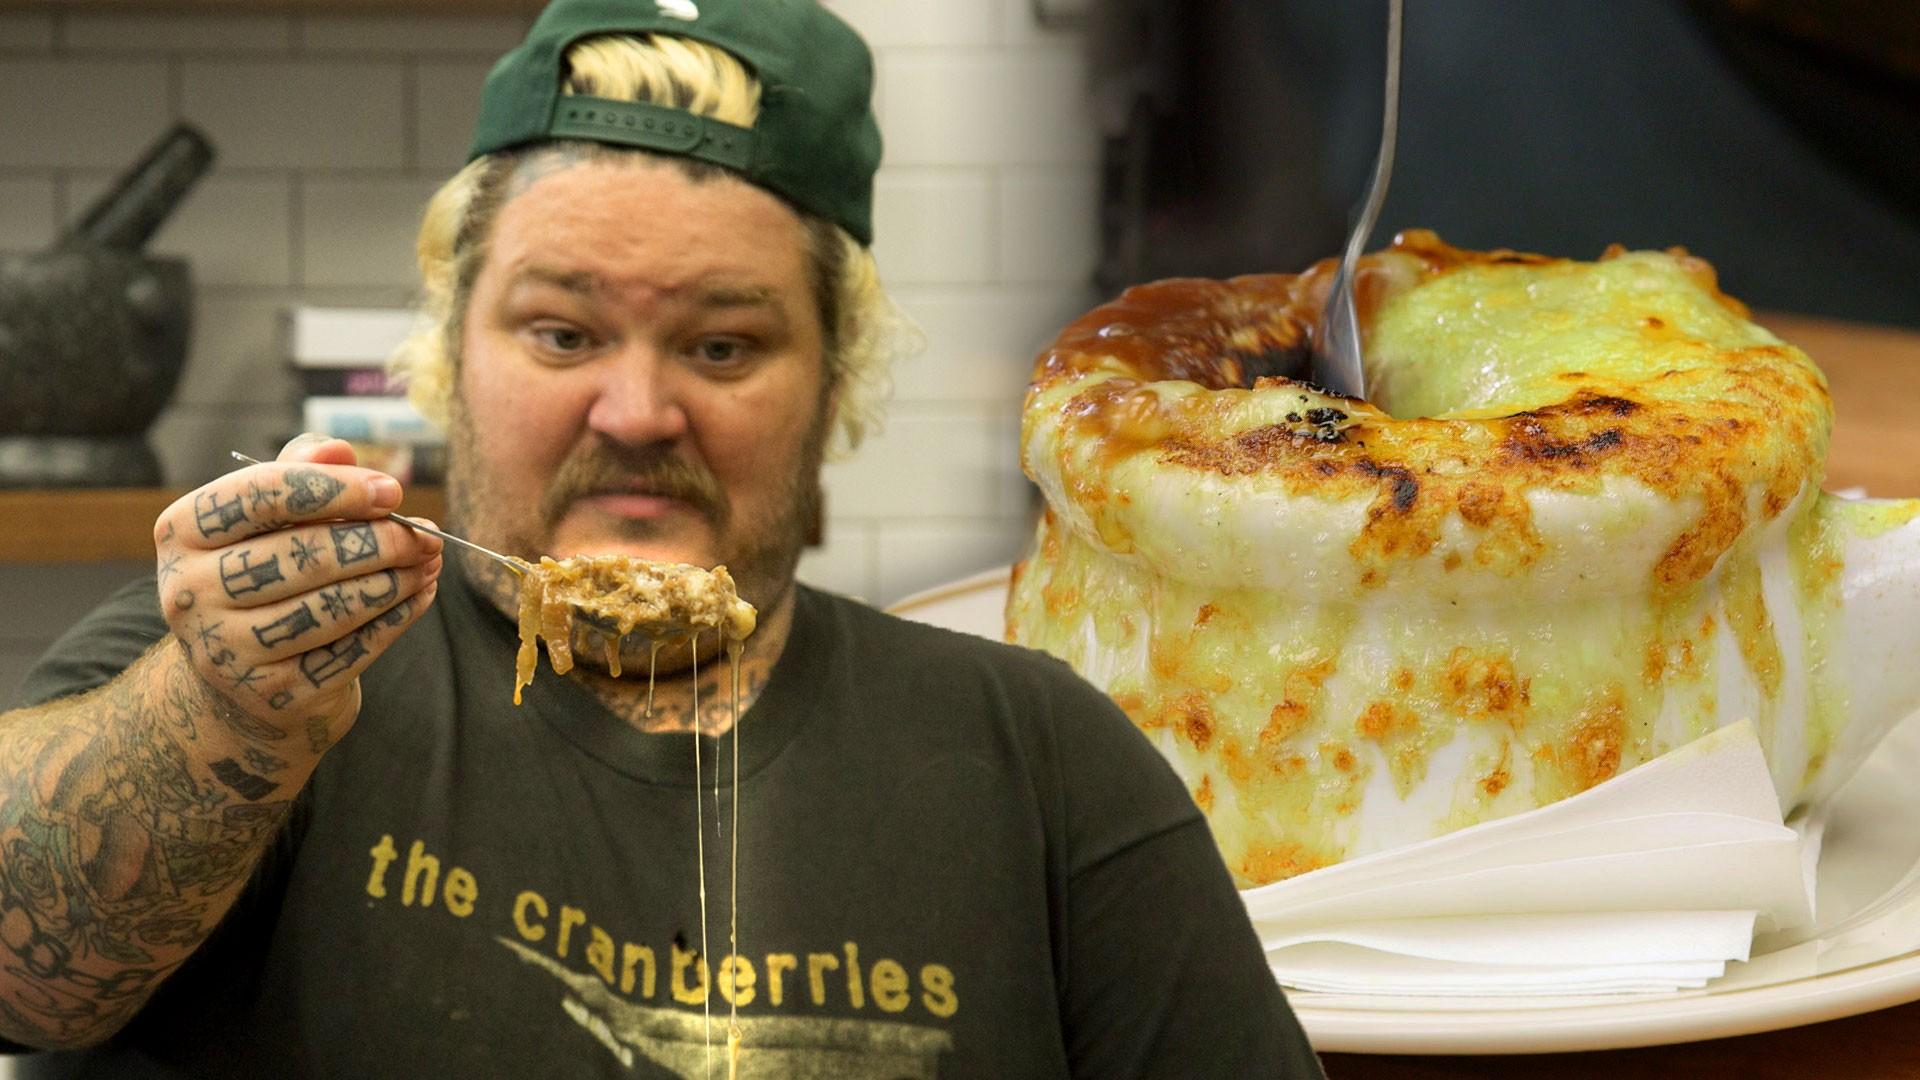 Matty Matheson Makes French Onion Soup with 6 Types of Onion